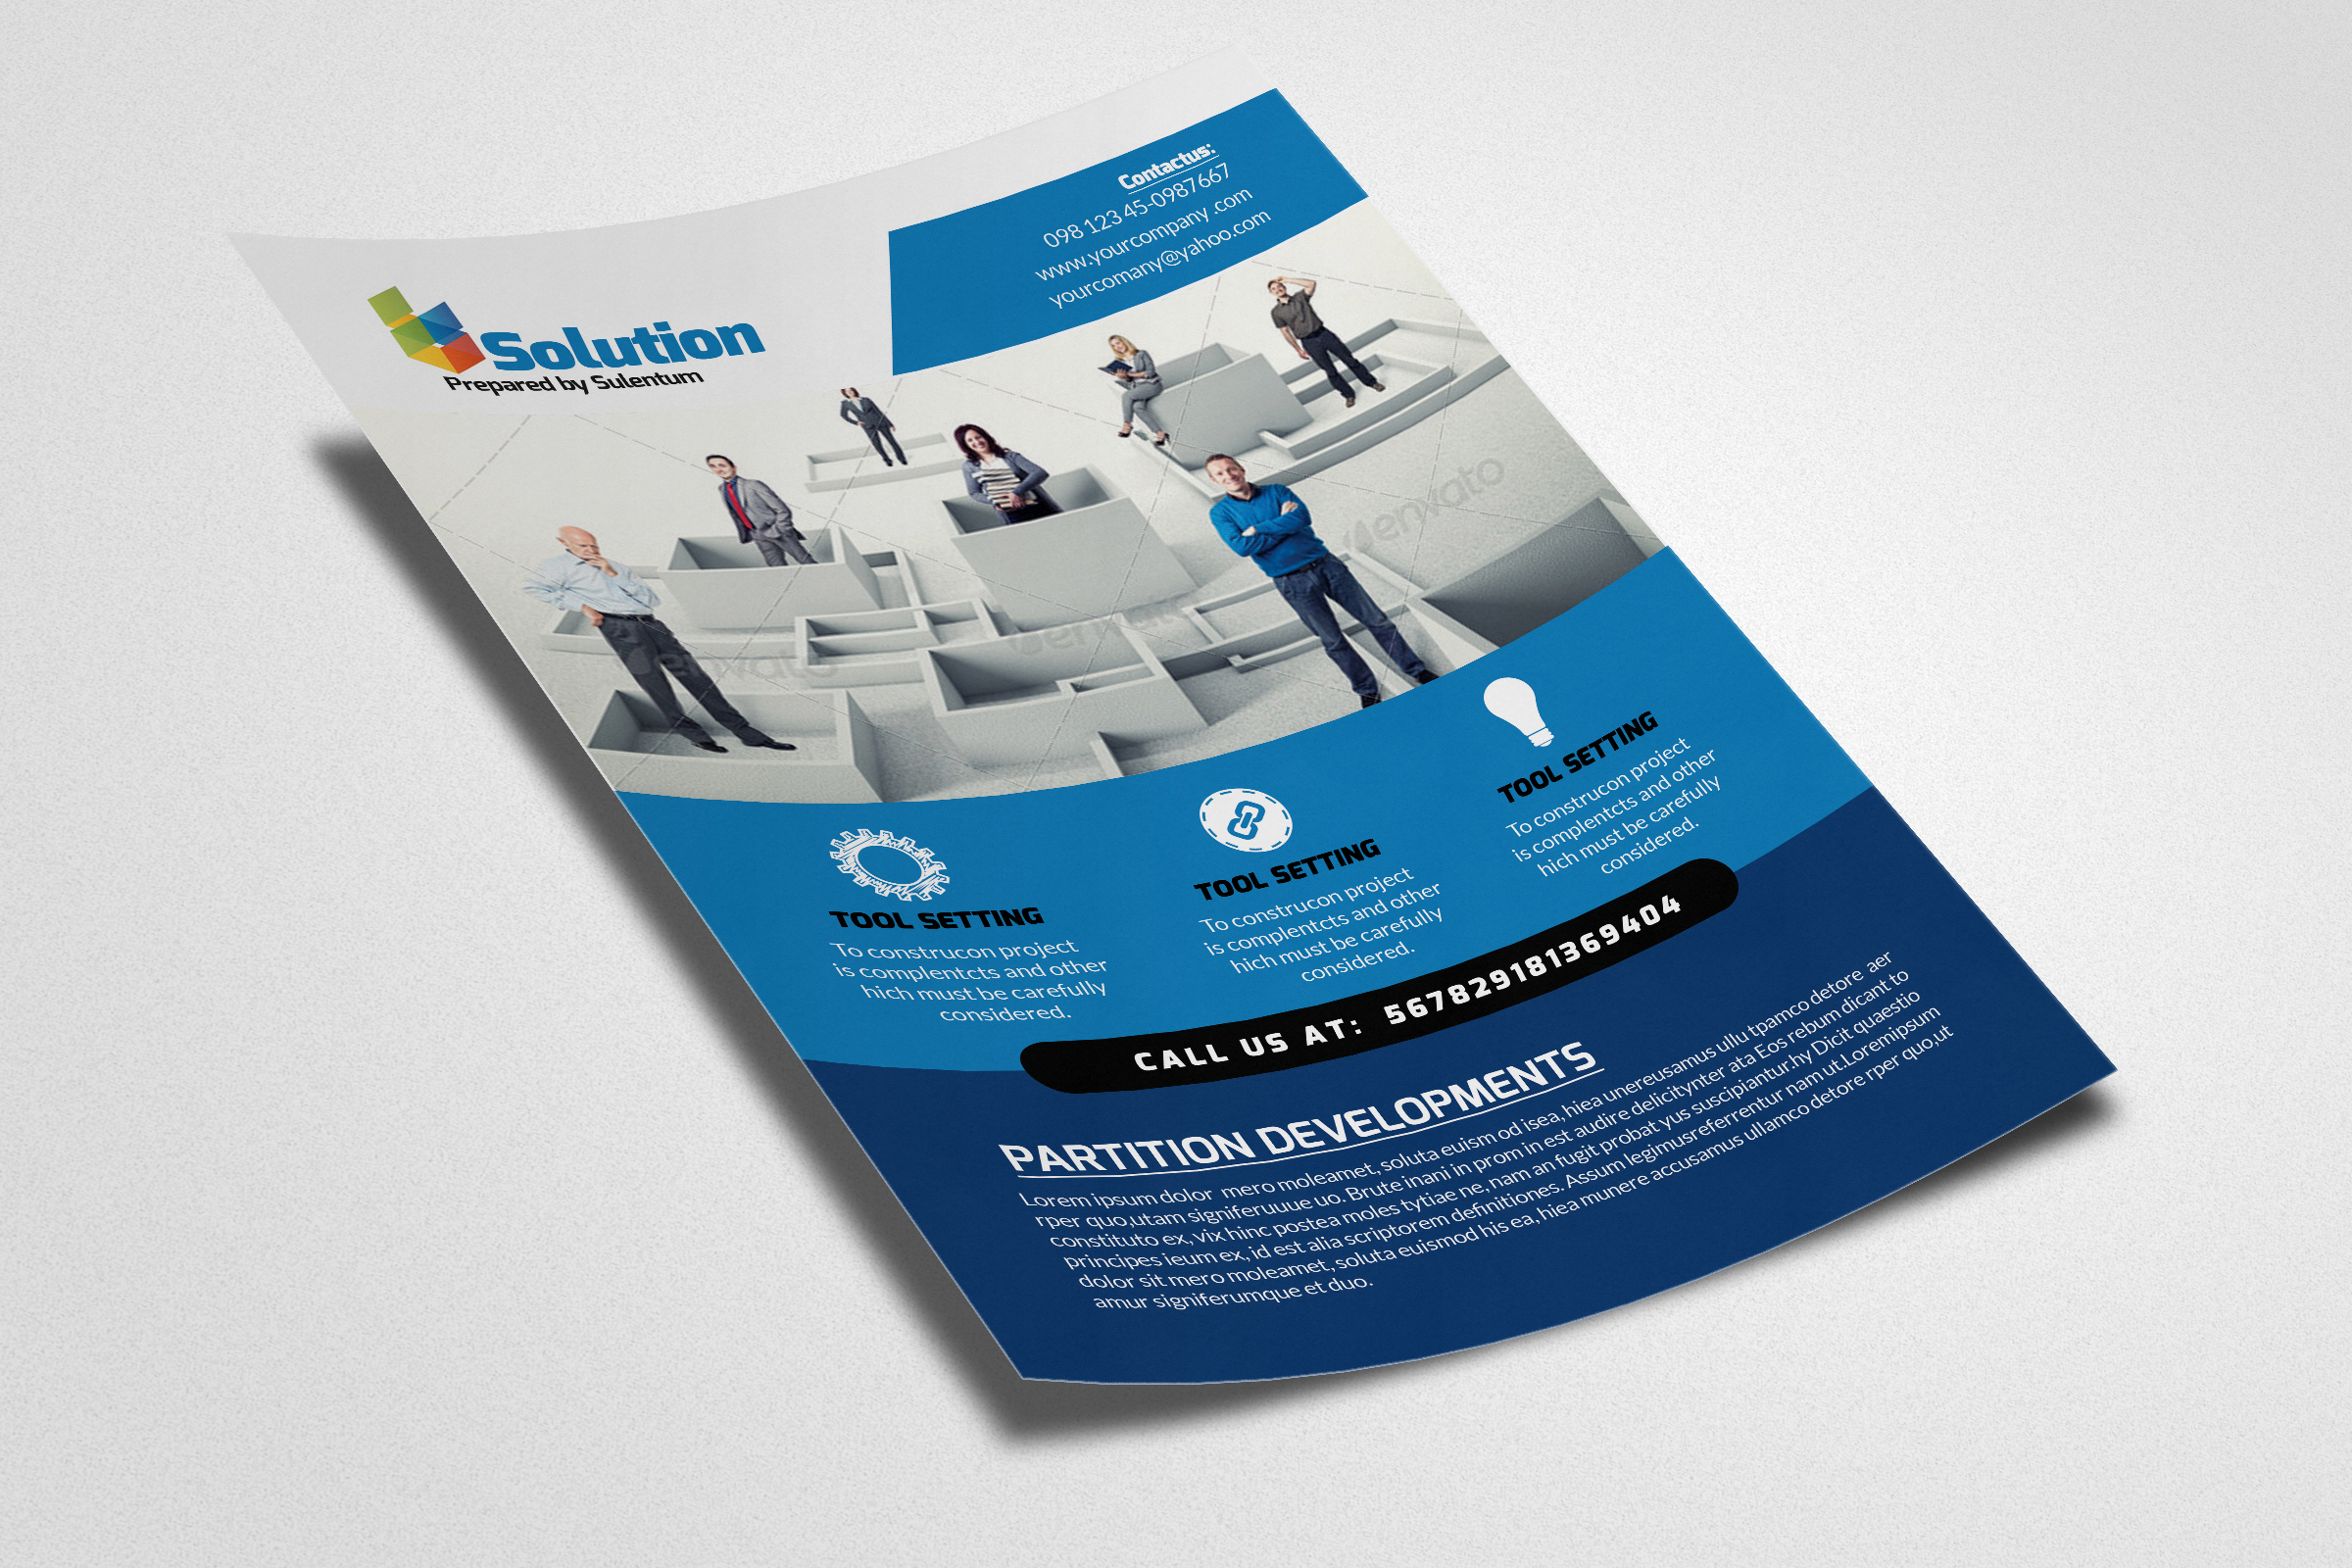 Business Problem Solution Flyers example image 2